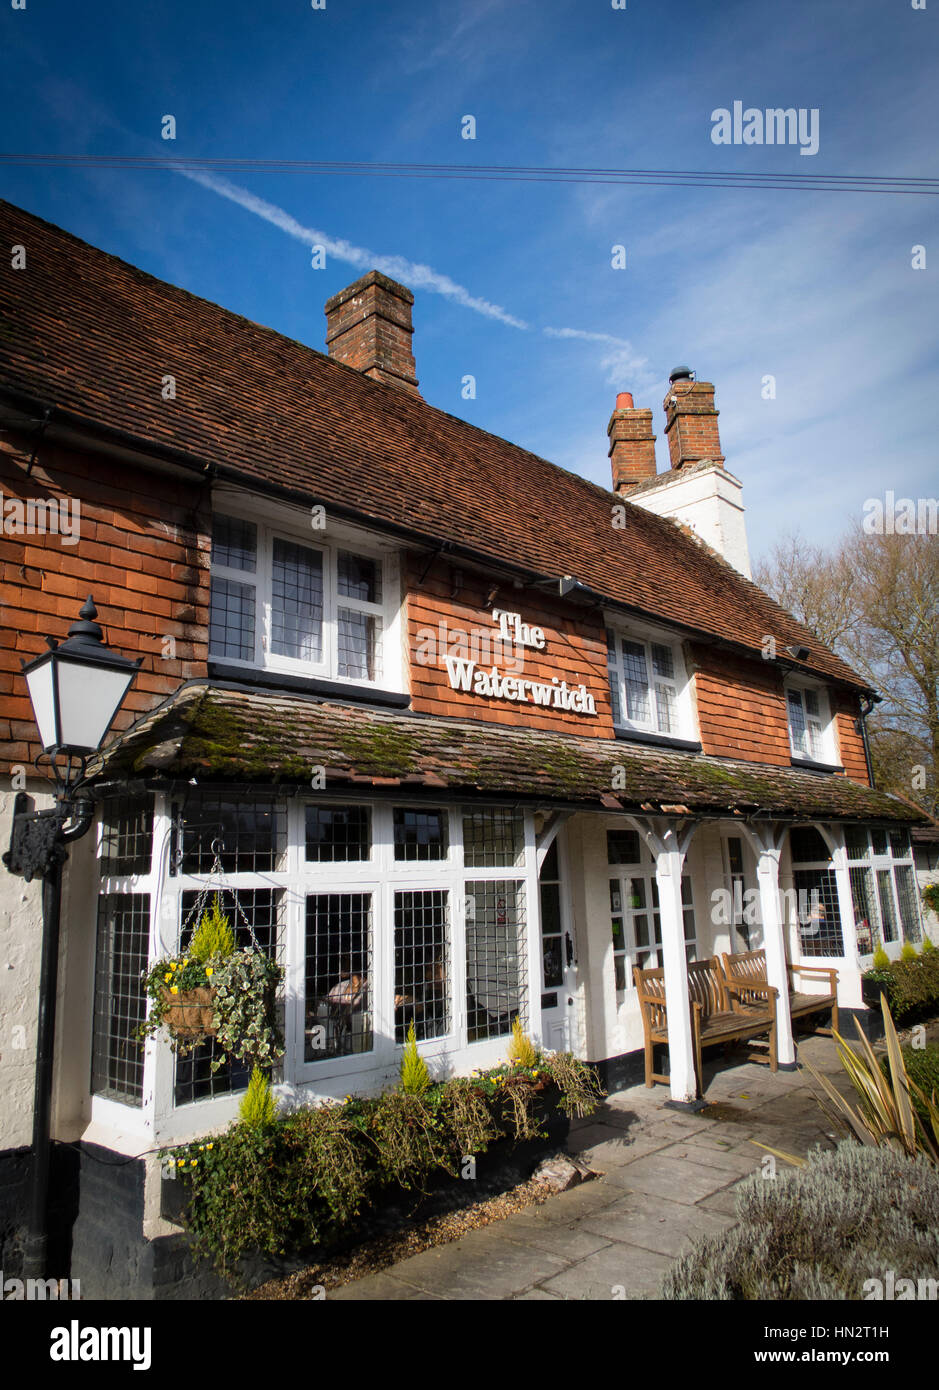 The Waterwitch Pub in Odiham Stock Photo